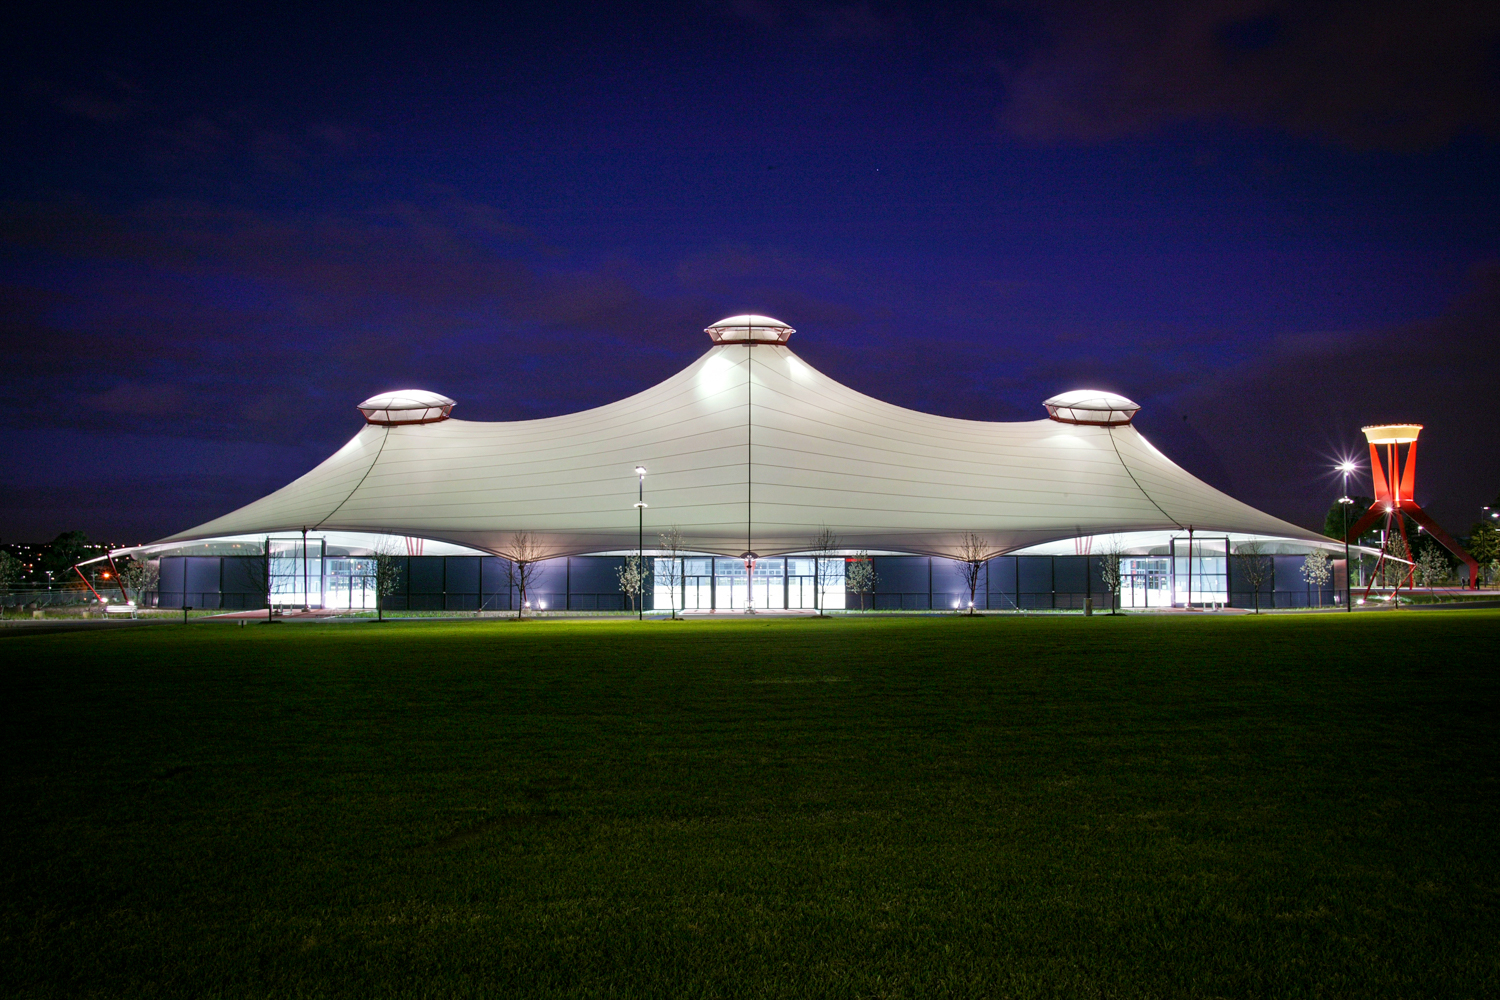 3195 Oasis Grand Pavilion Overall View at Night.jpg